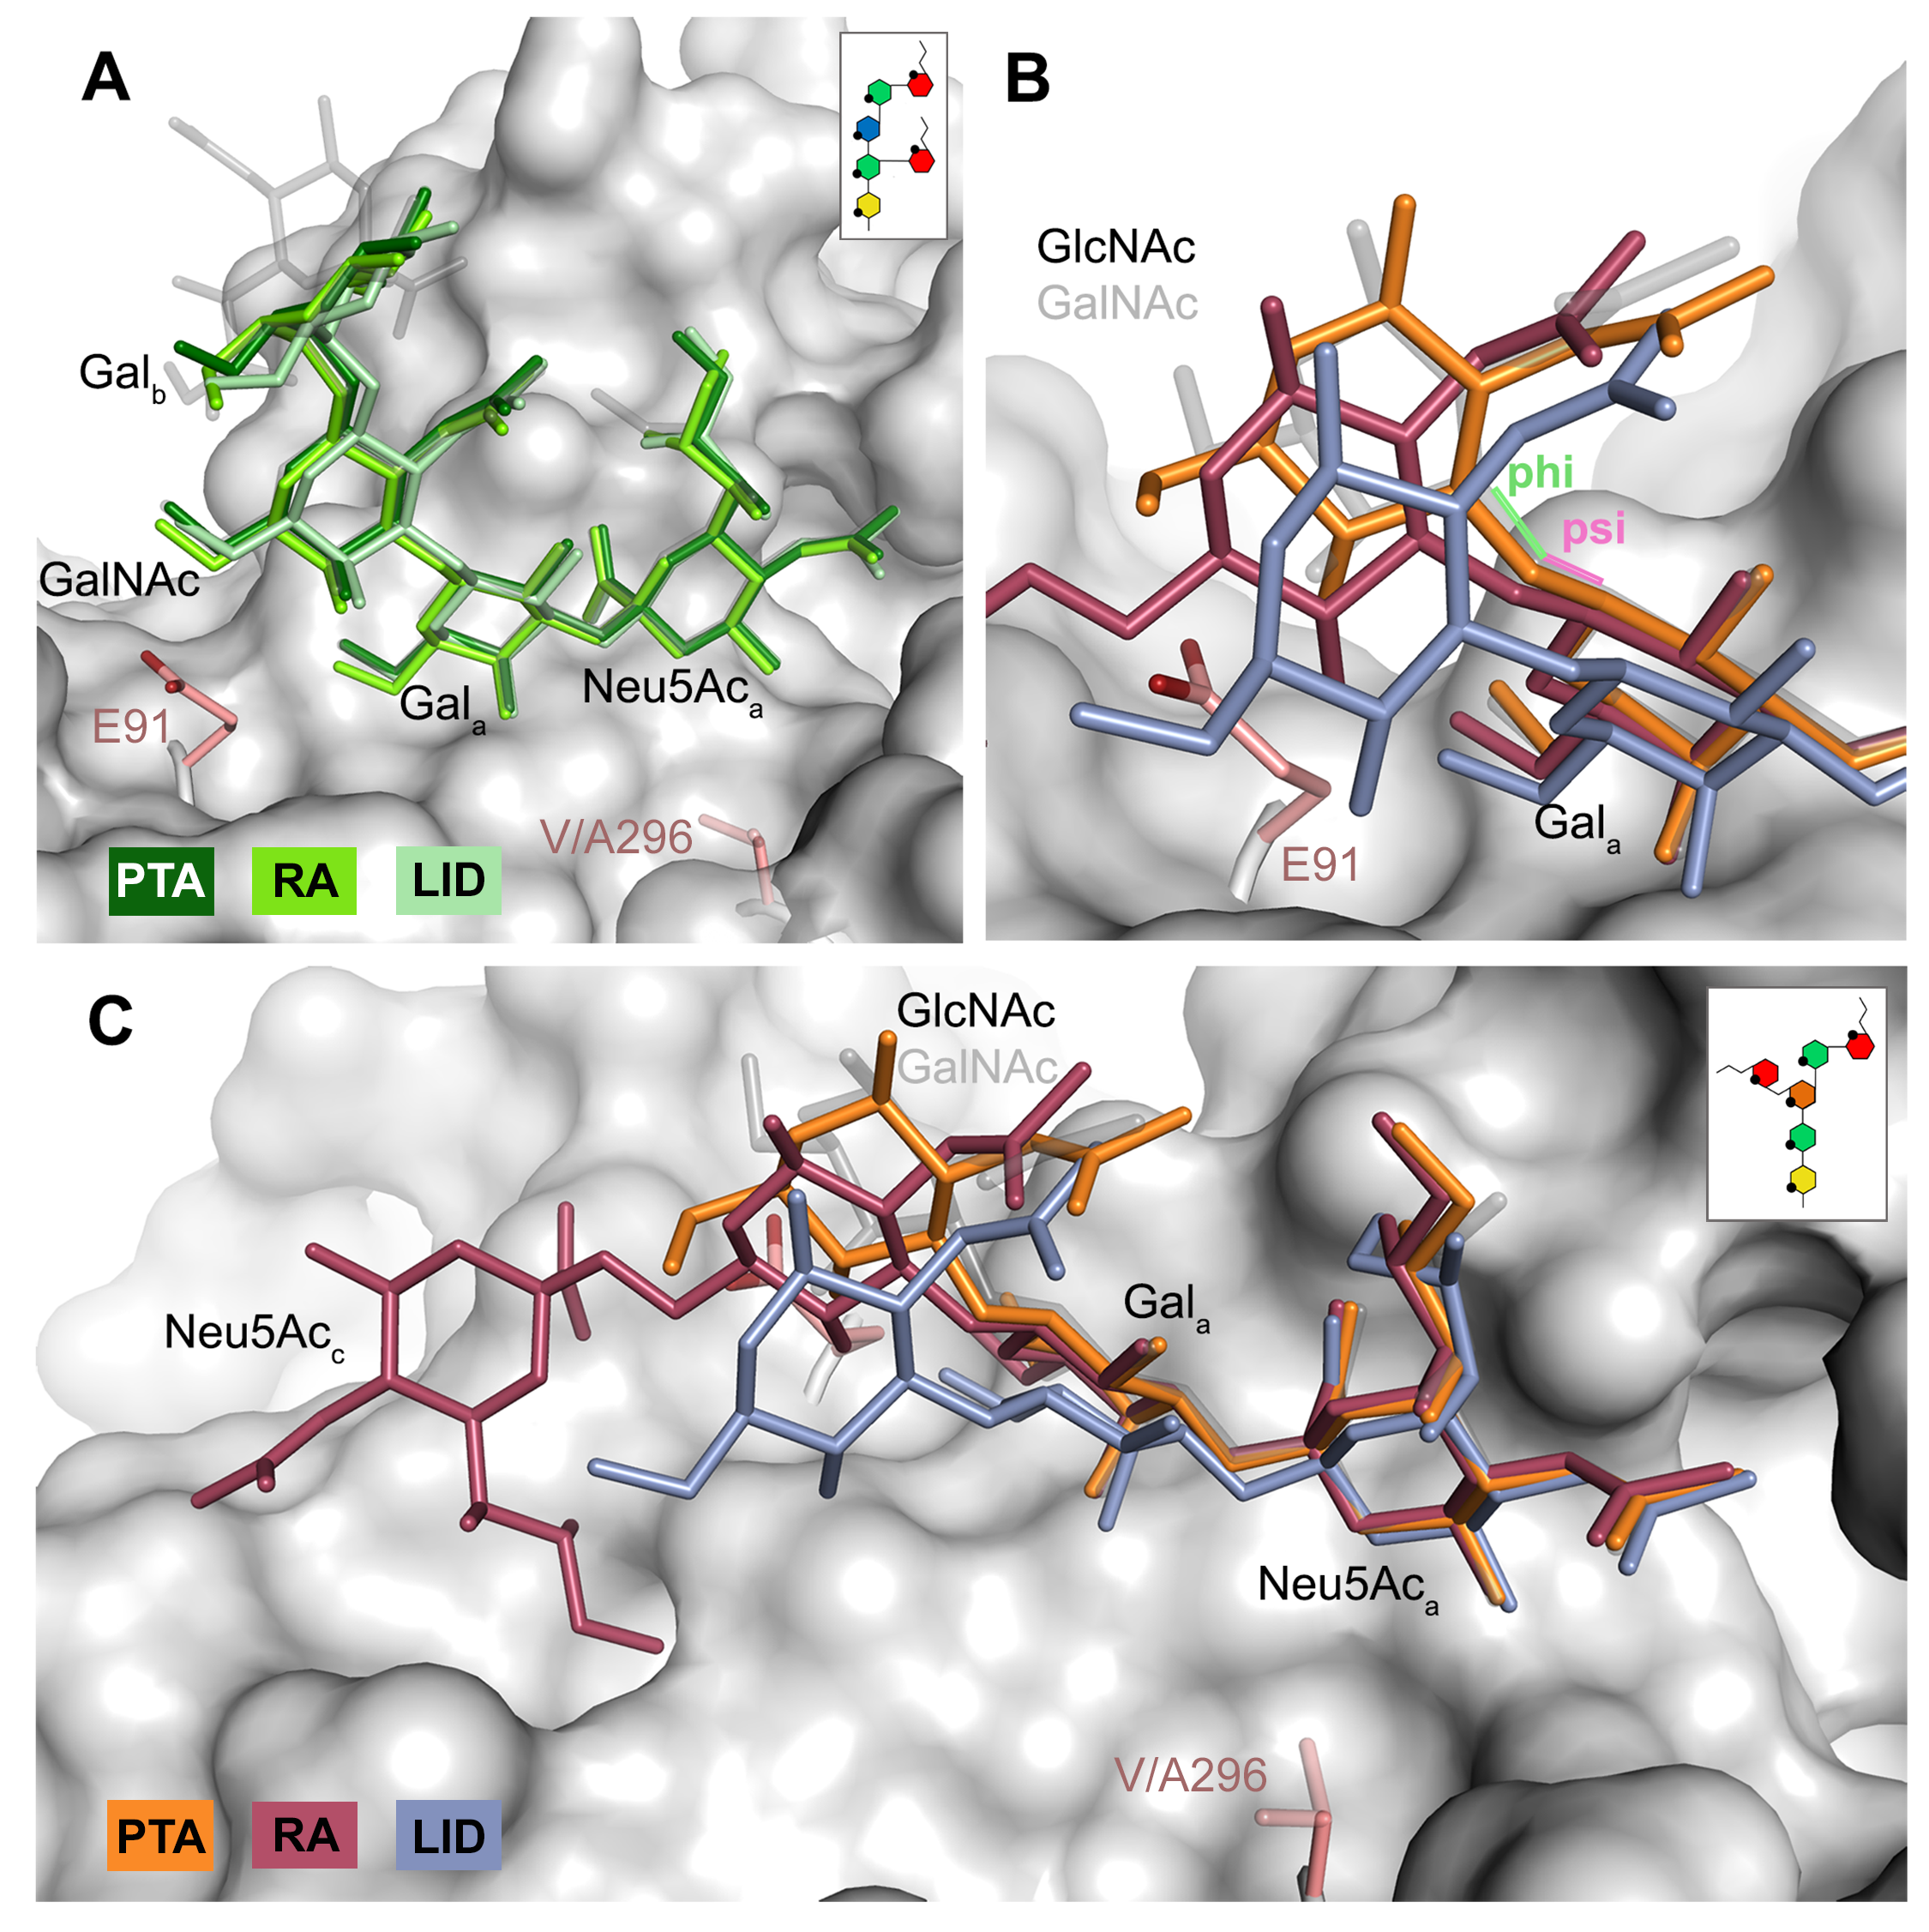 Differences in receptor binding patterns across glycans.